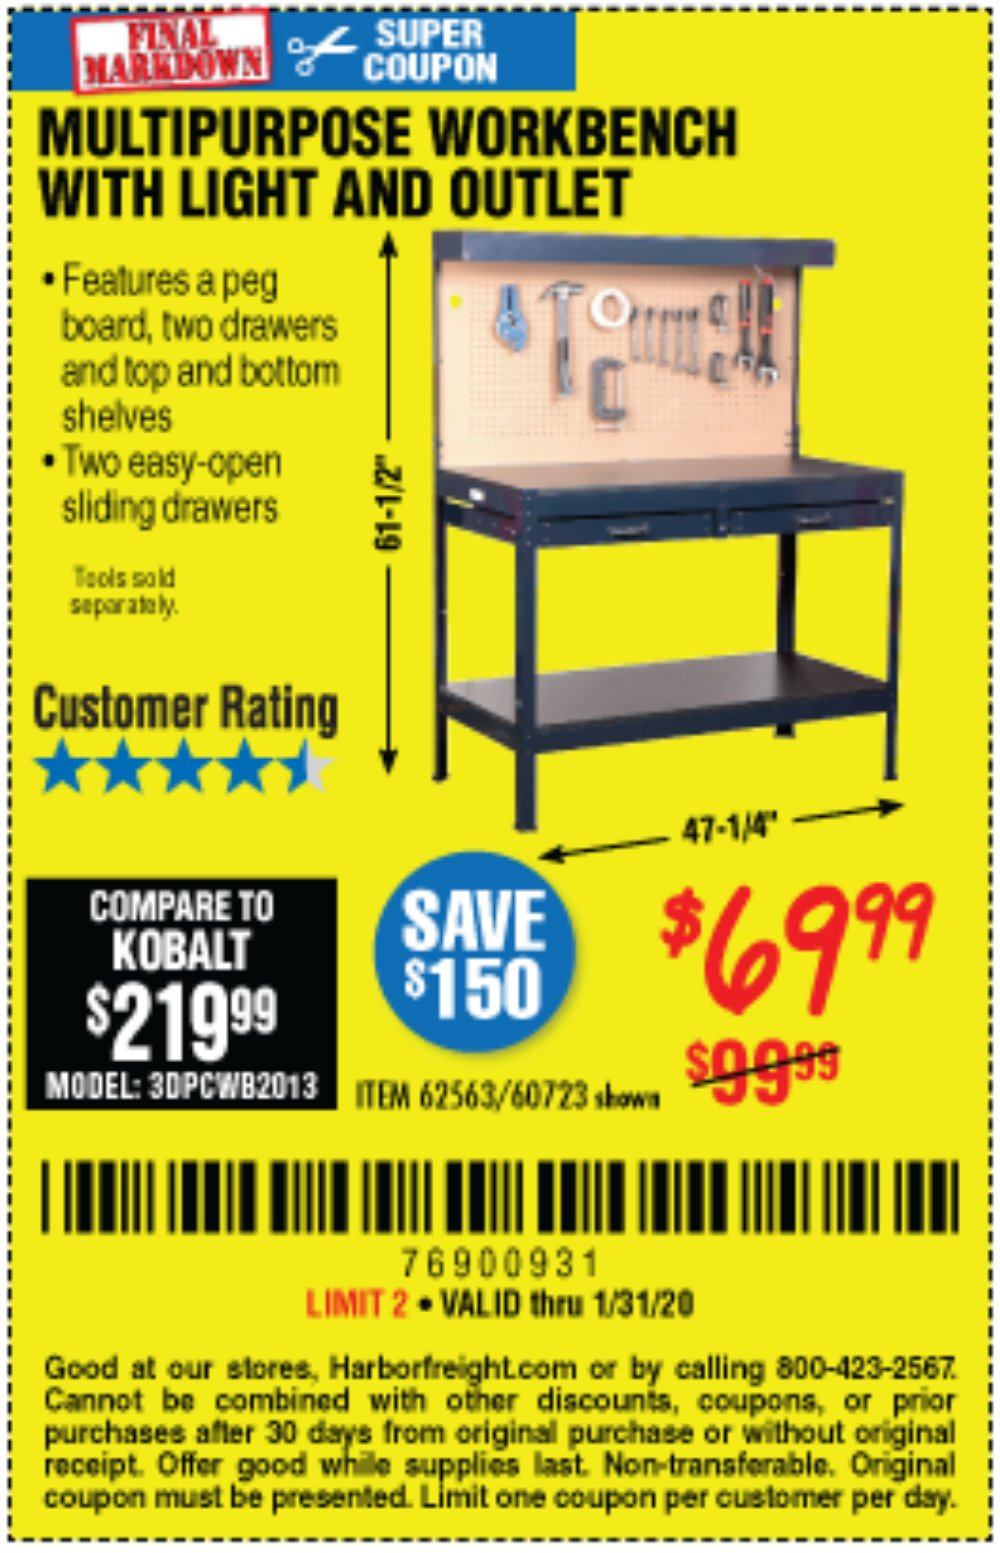 Harbor Freight Coupon, HF Coupons - Multipurpose Workbench With Lighting And Outlet